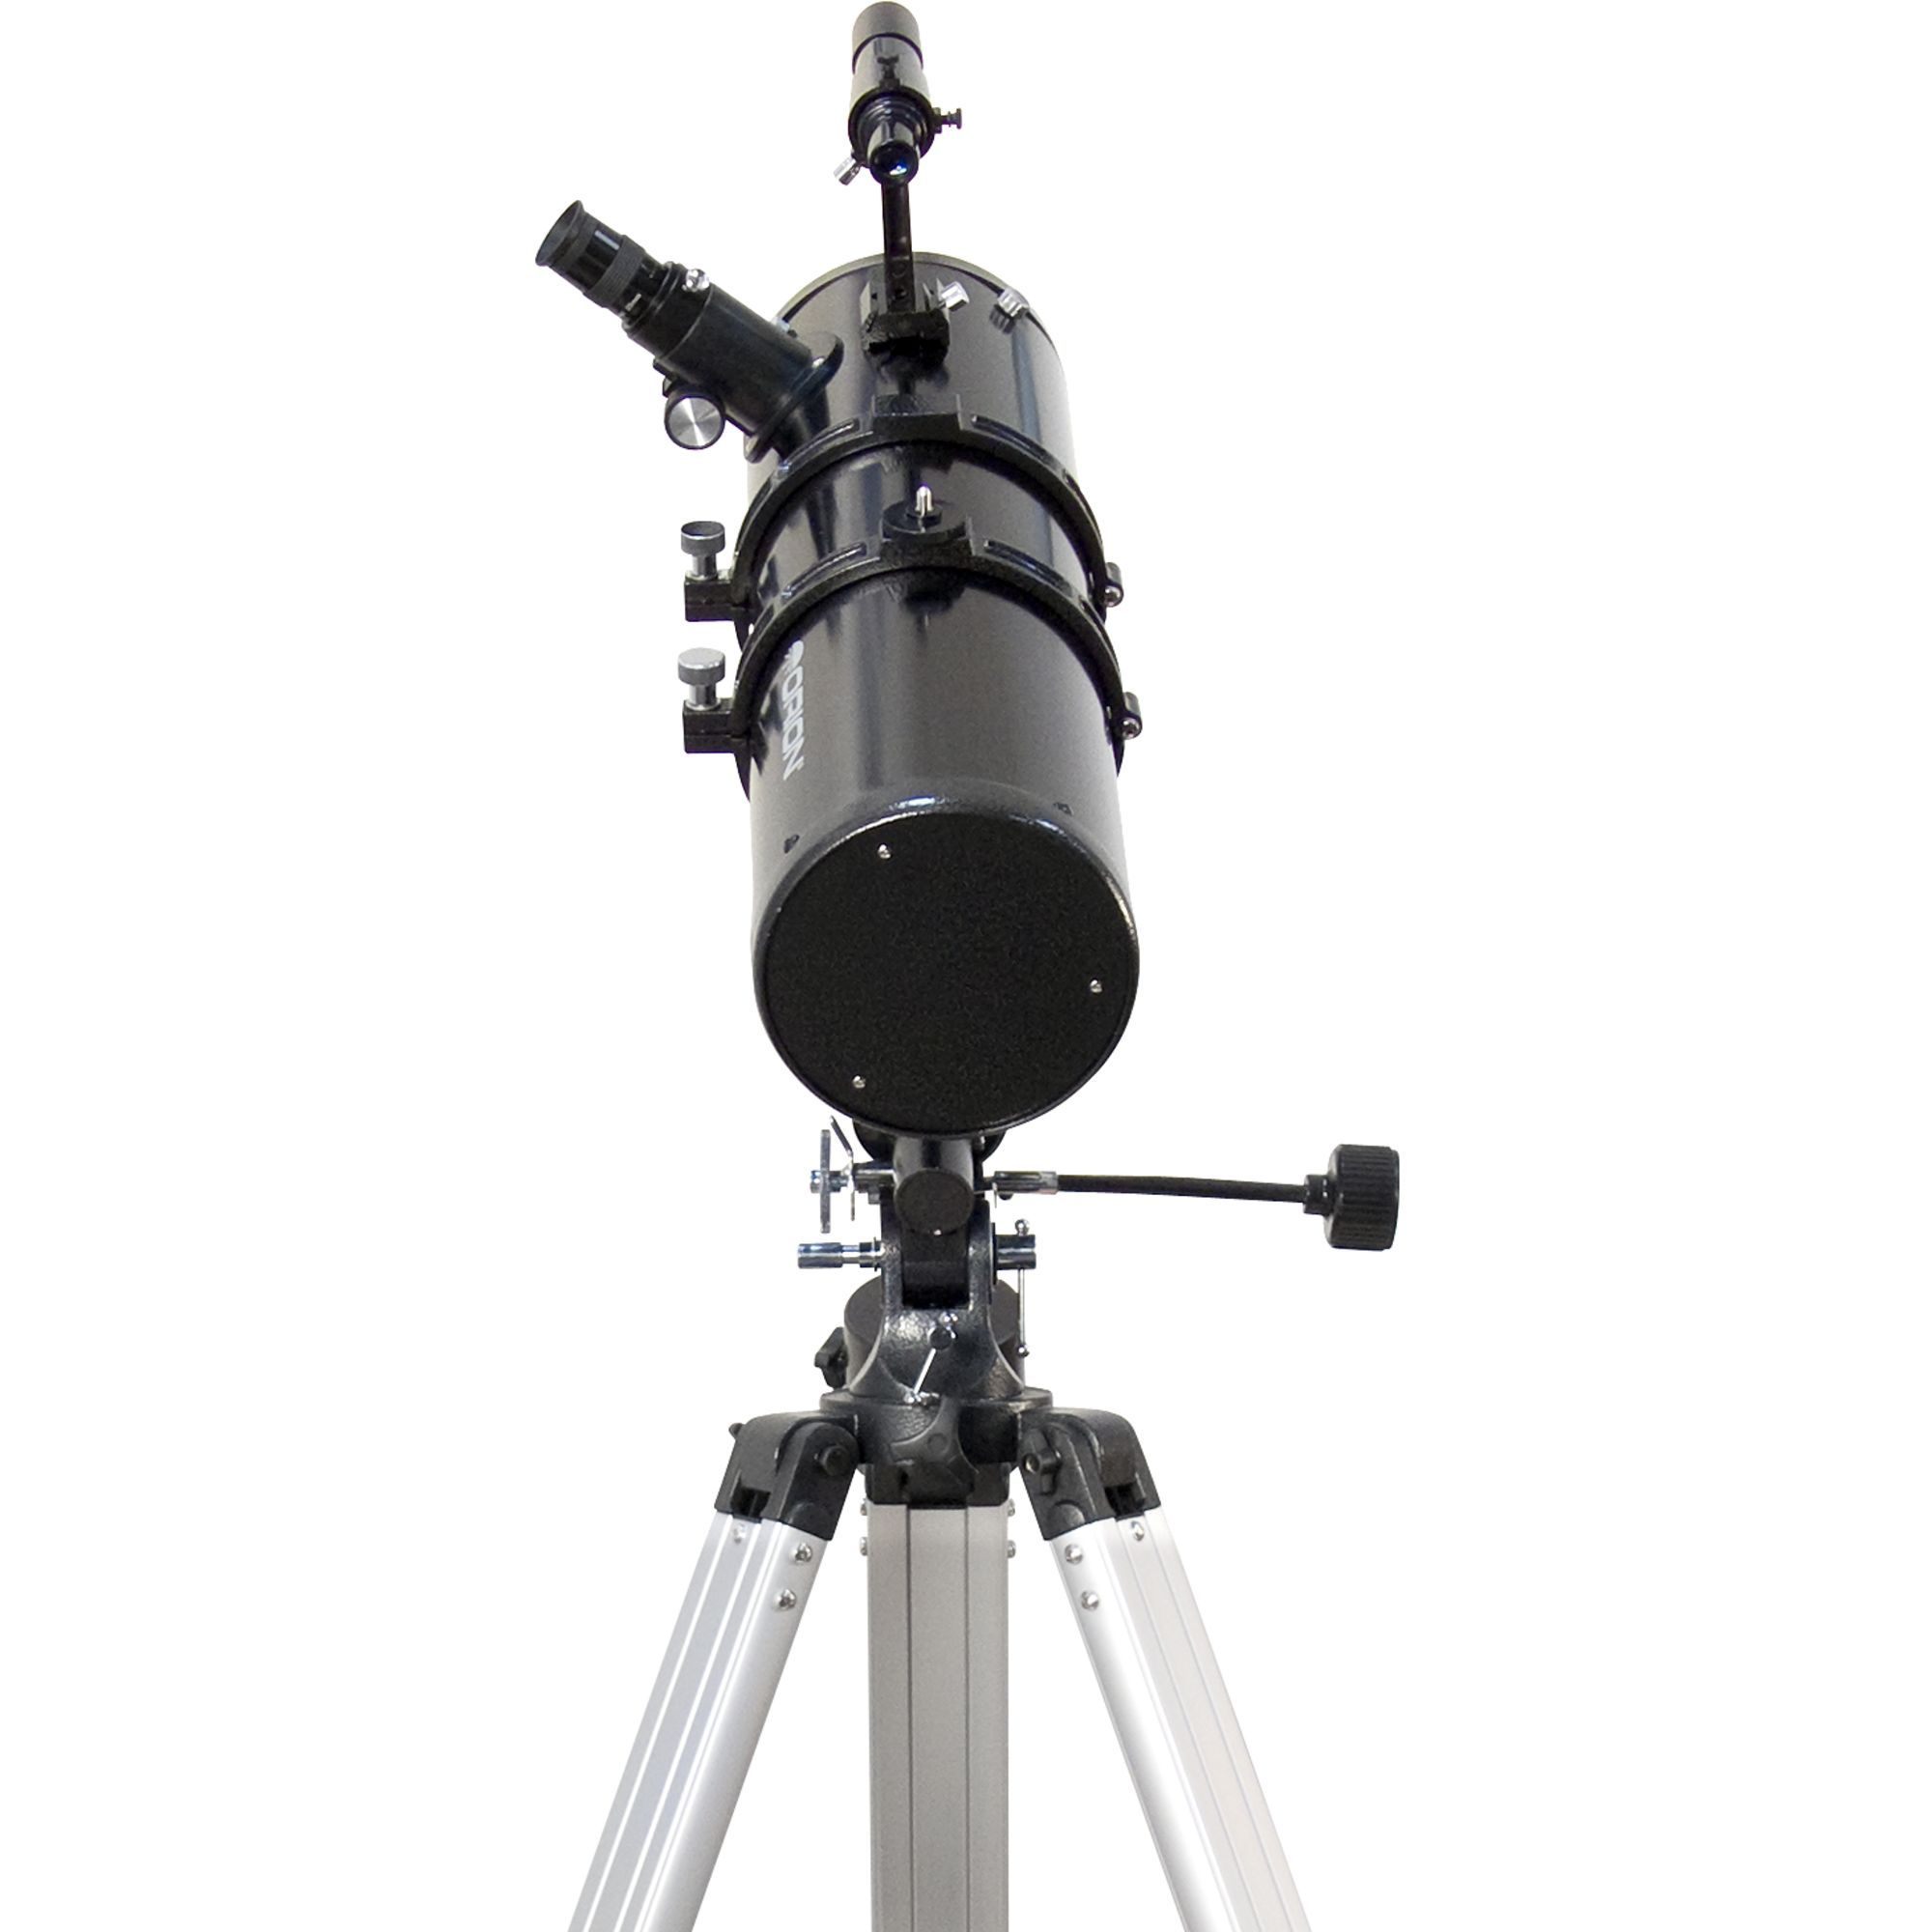 Orion Spaceprobe 130ST Review (A Good Budget Astronomy